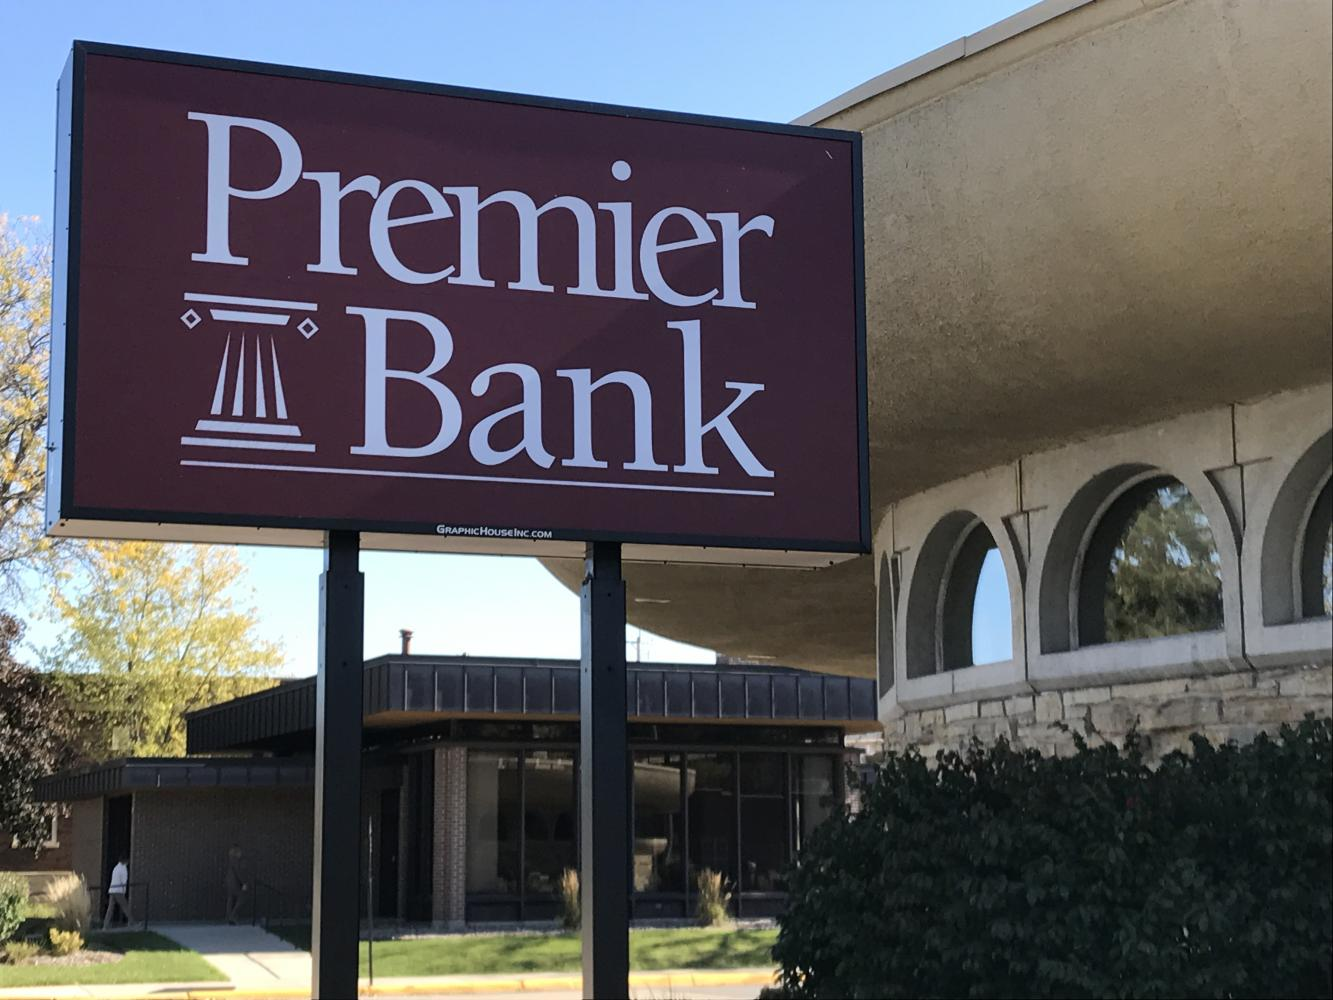 Premier Banks' location in Whitewater which was previously the local branch for Commercial Bank. Budlong is excited to get involved with the community and work with UW-W.